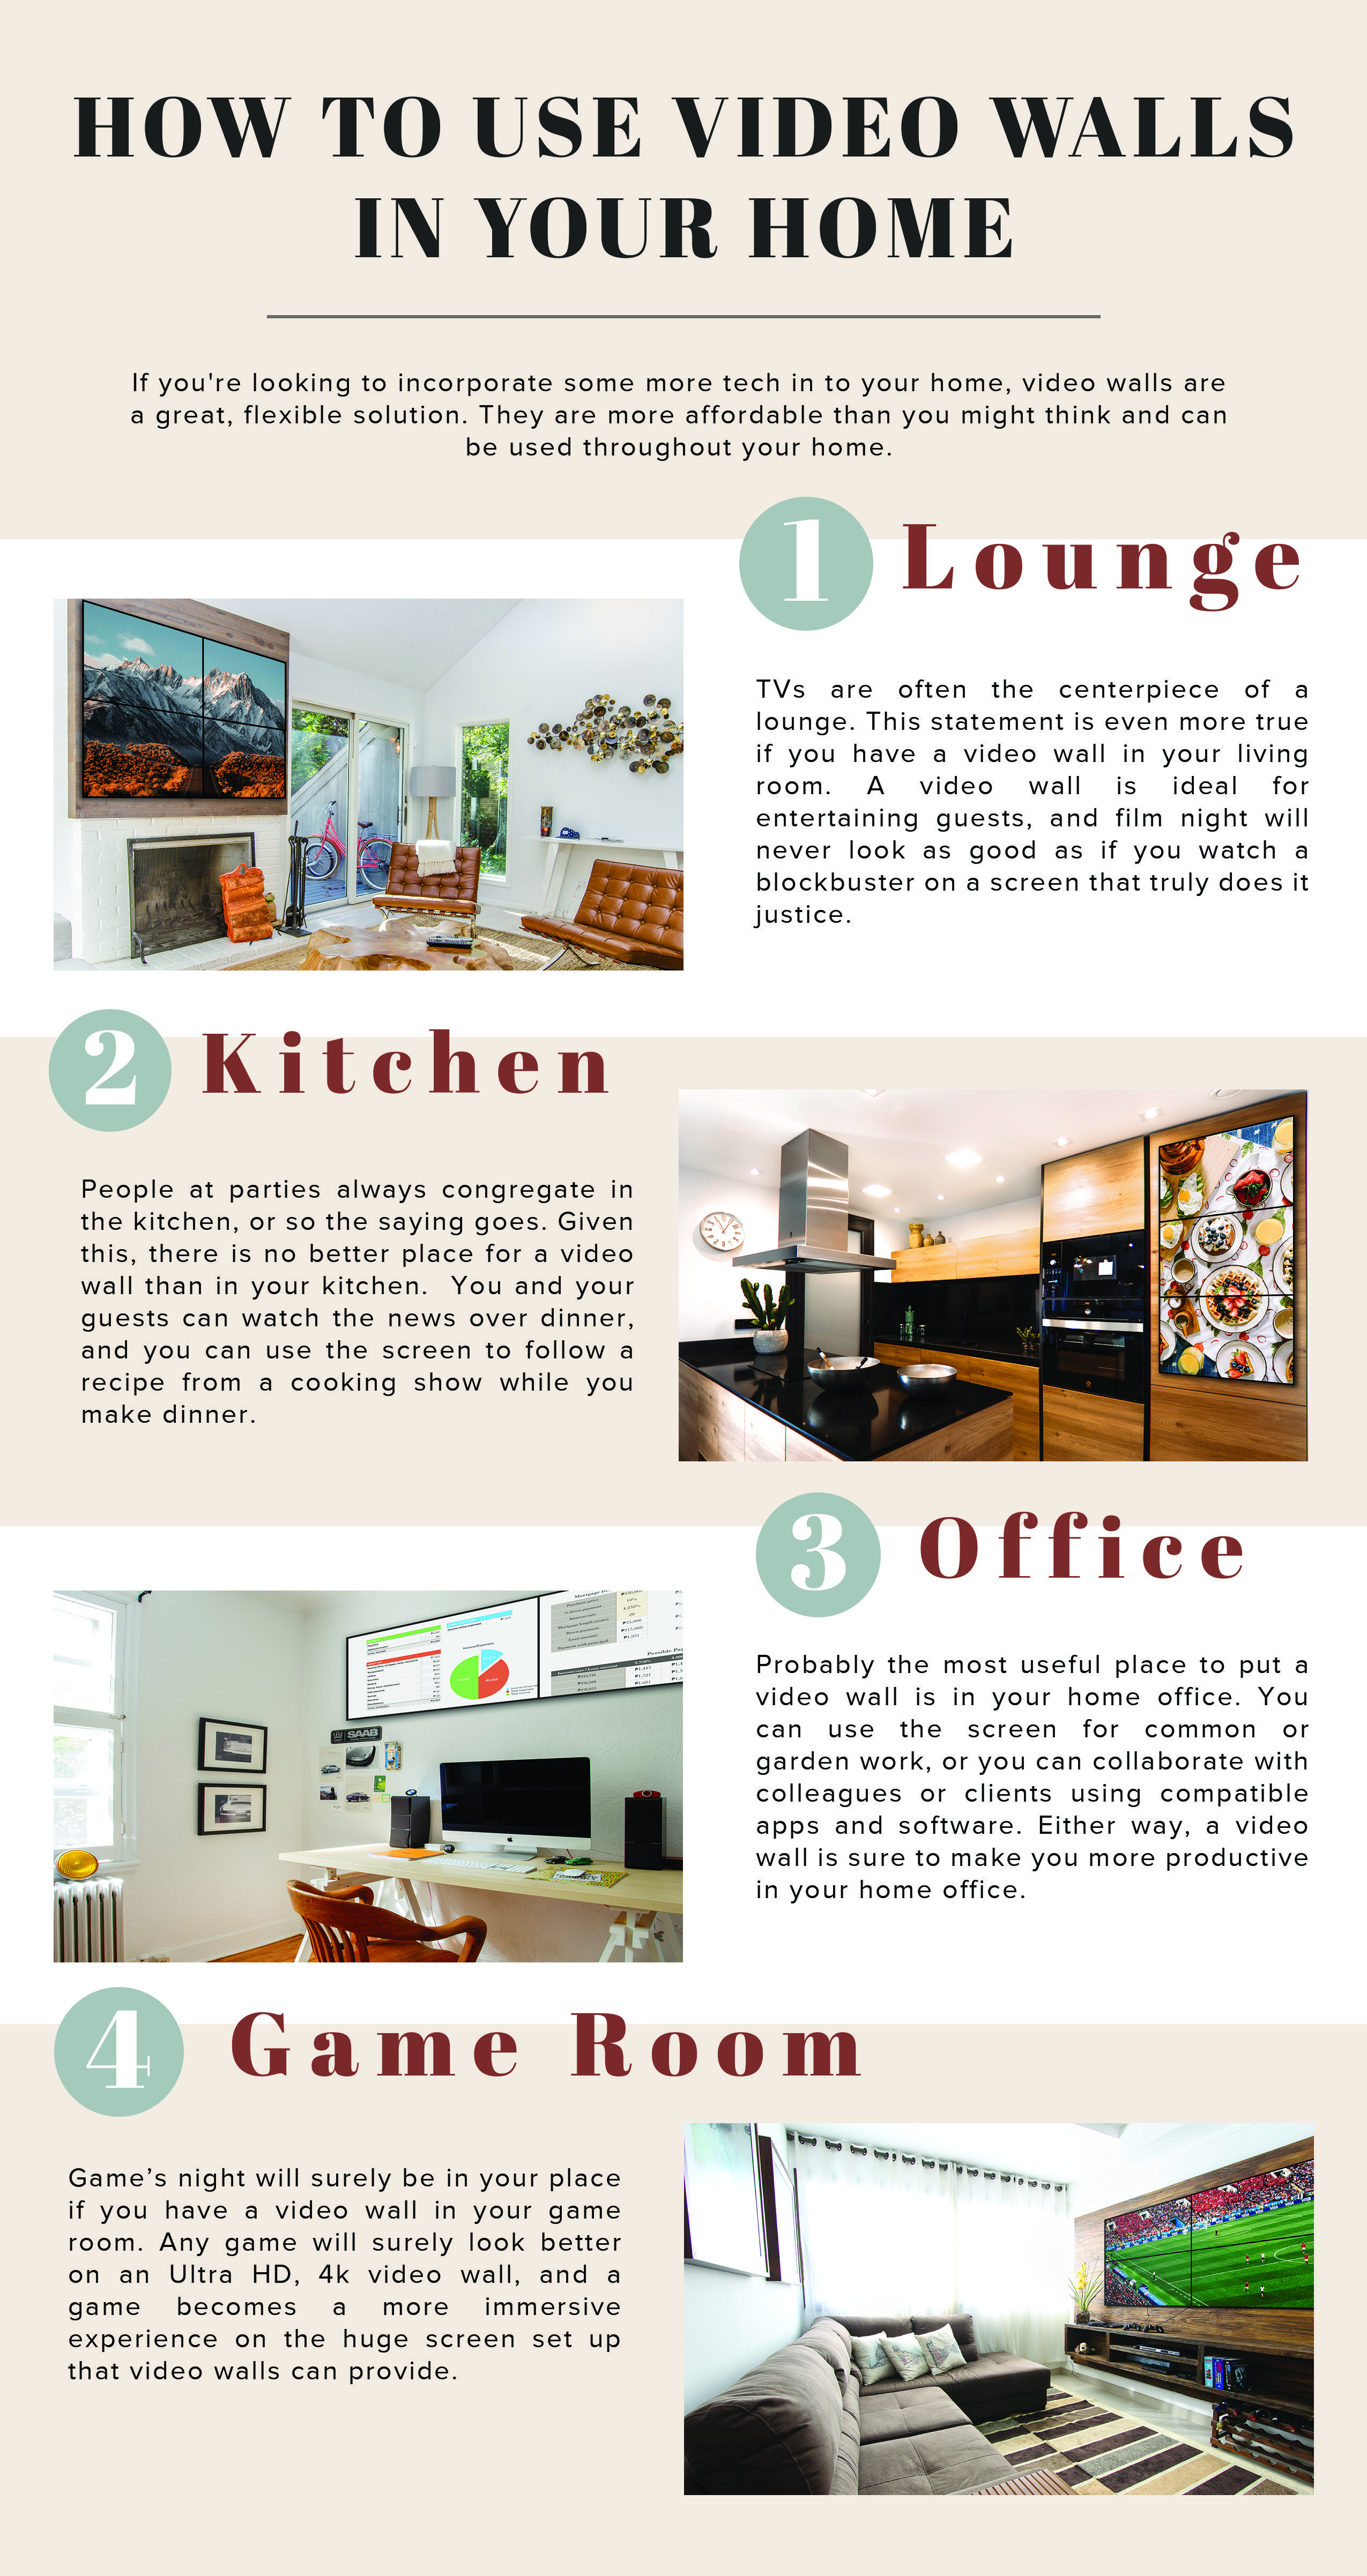 Infographic showing how to use video walls in your home